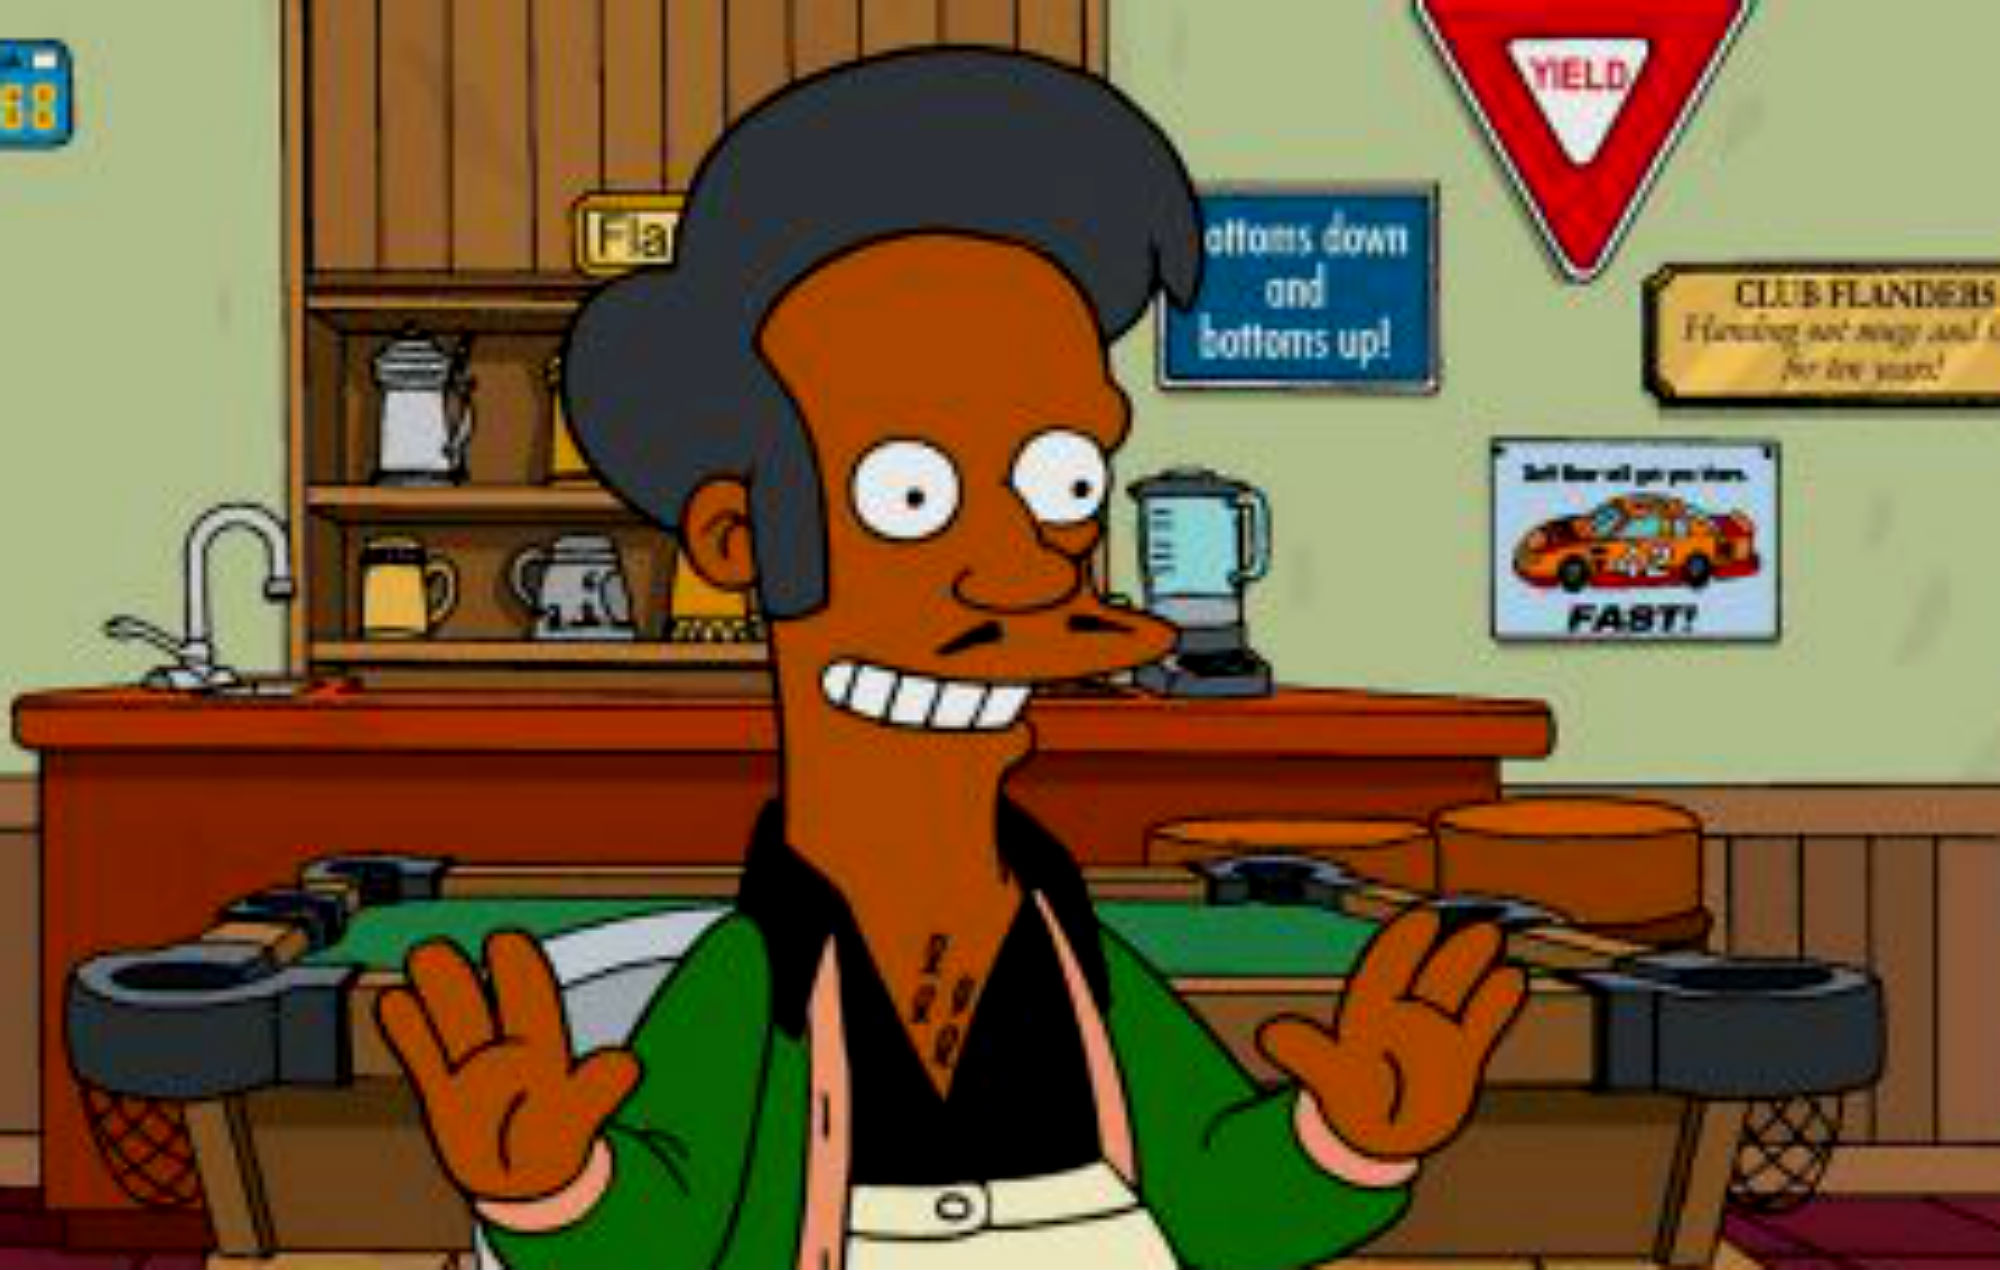 Apu as depicted in The Simpsons